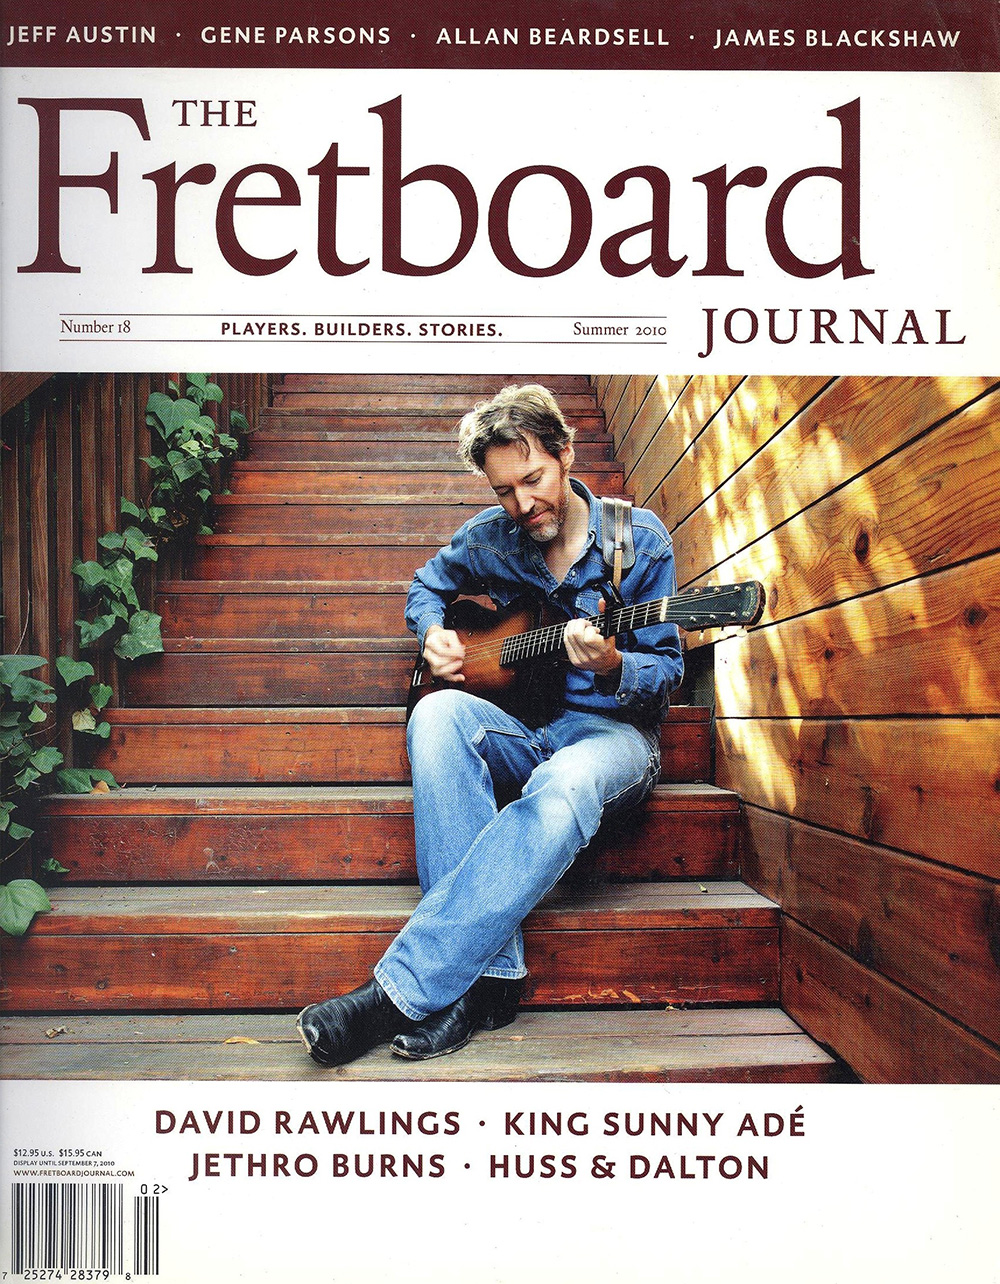 David Rawlings for Fretbaord Journal